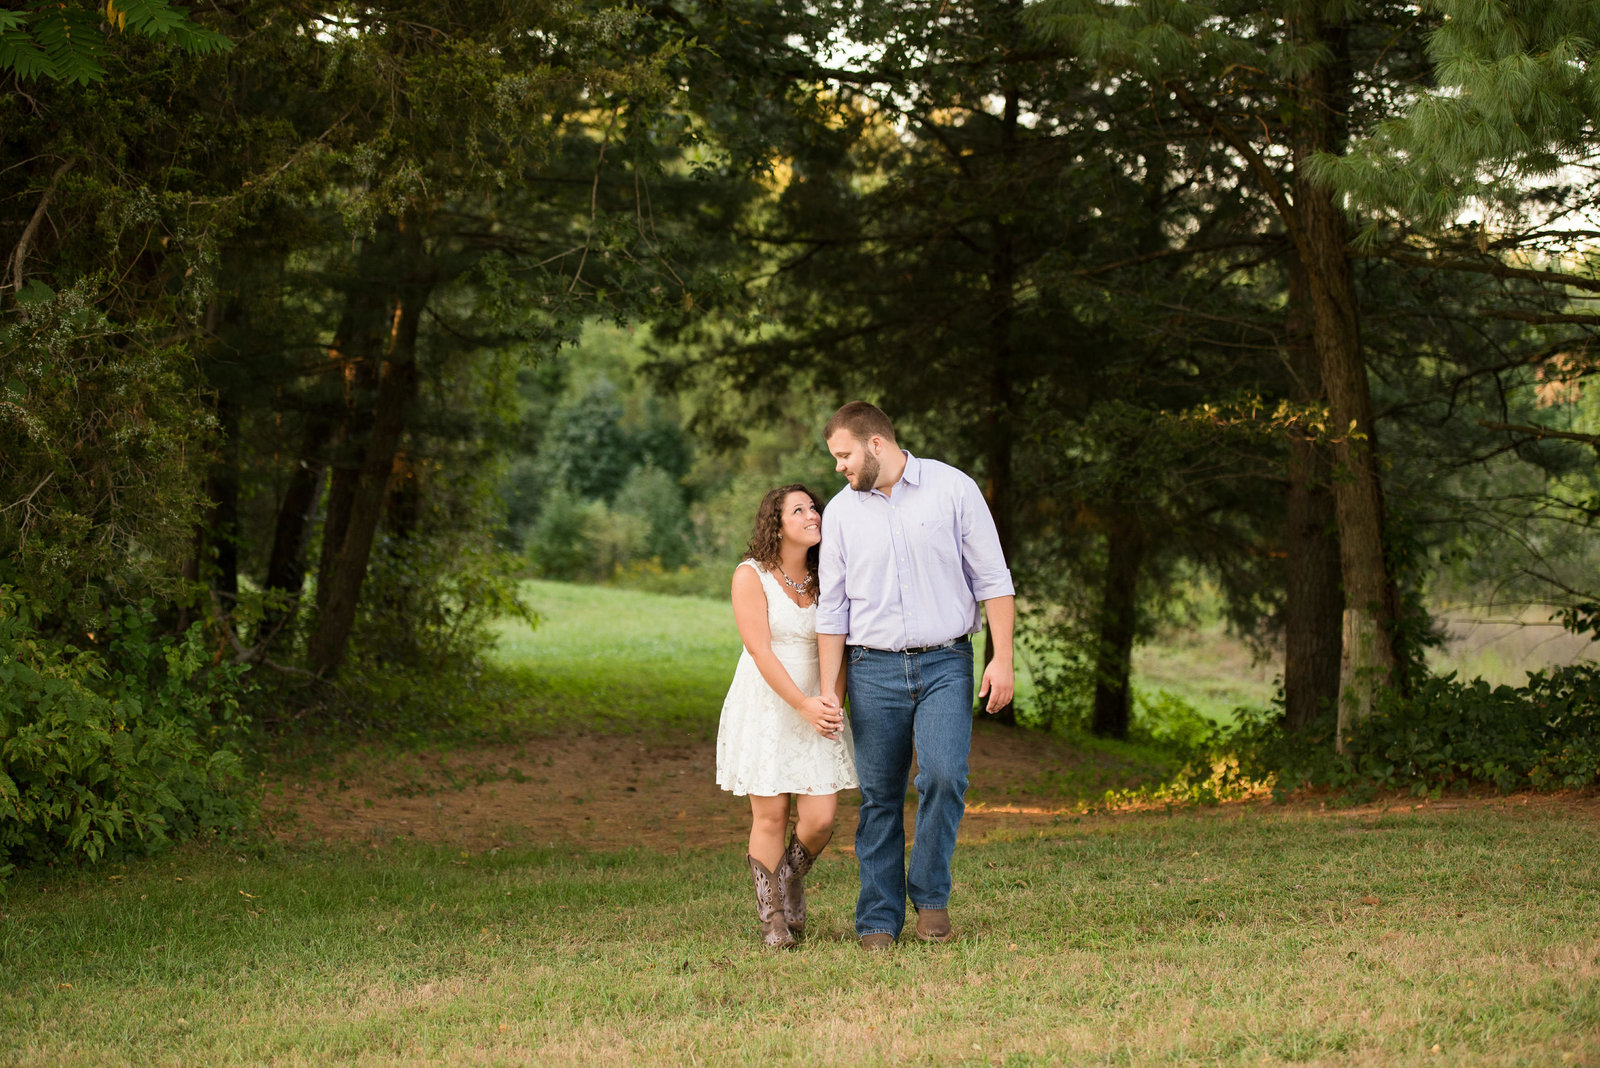 NJ_Rustic_Engagement_Photography132